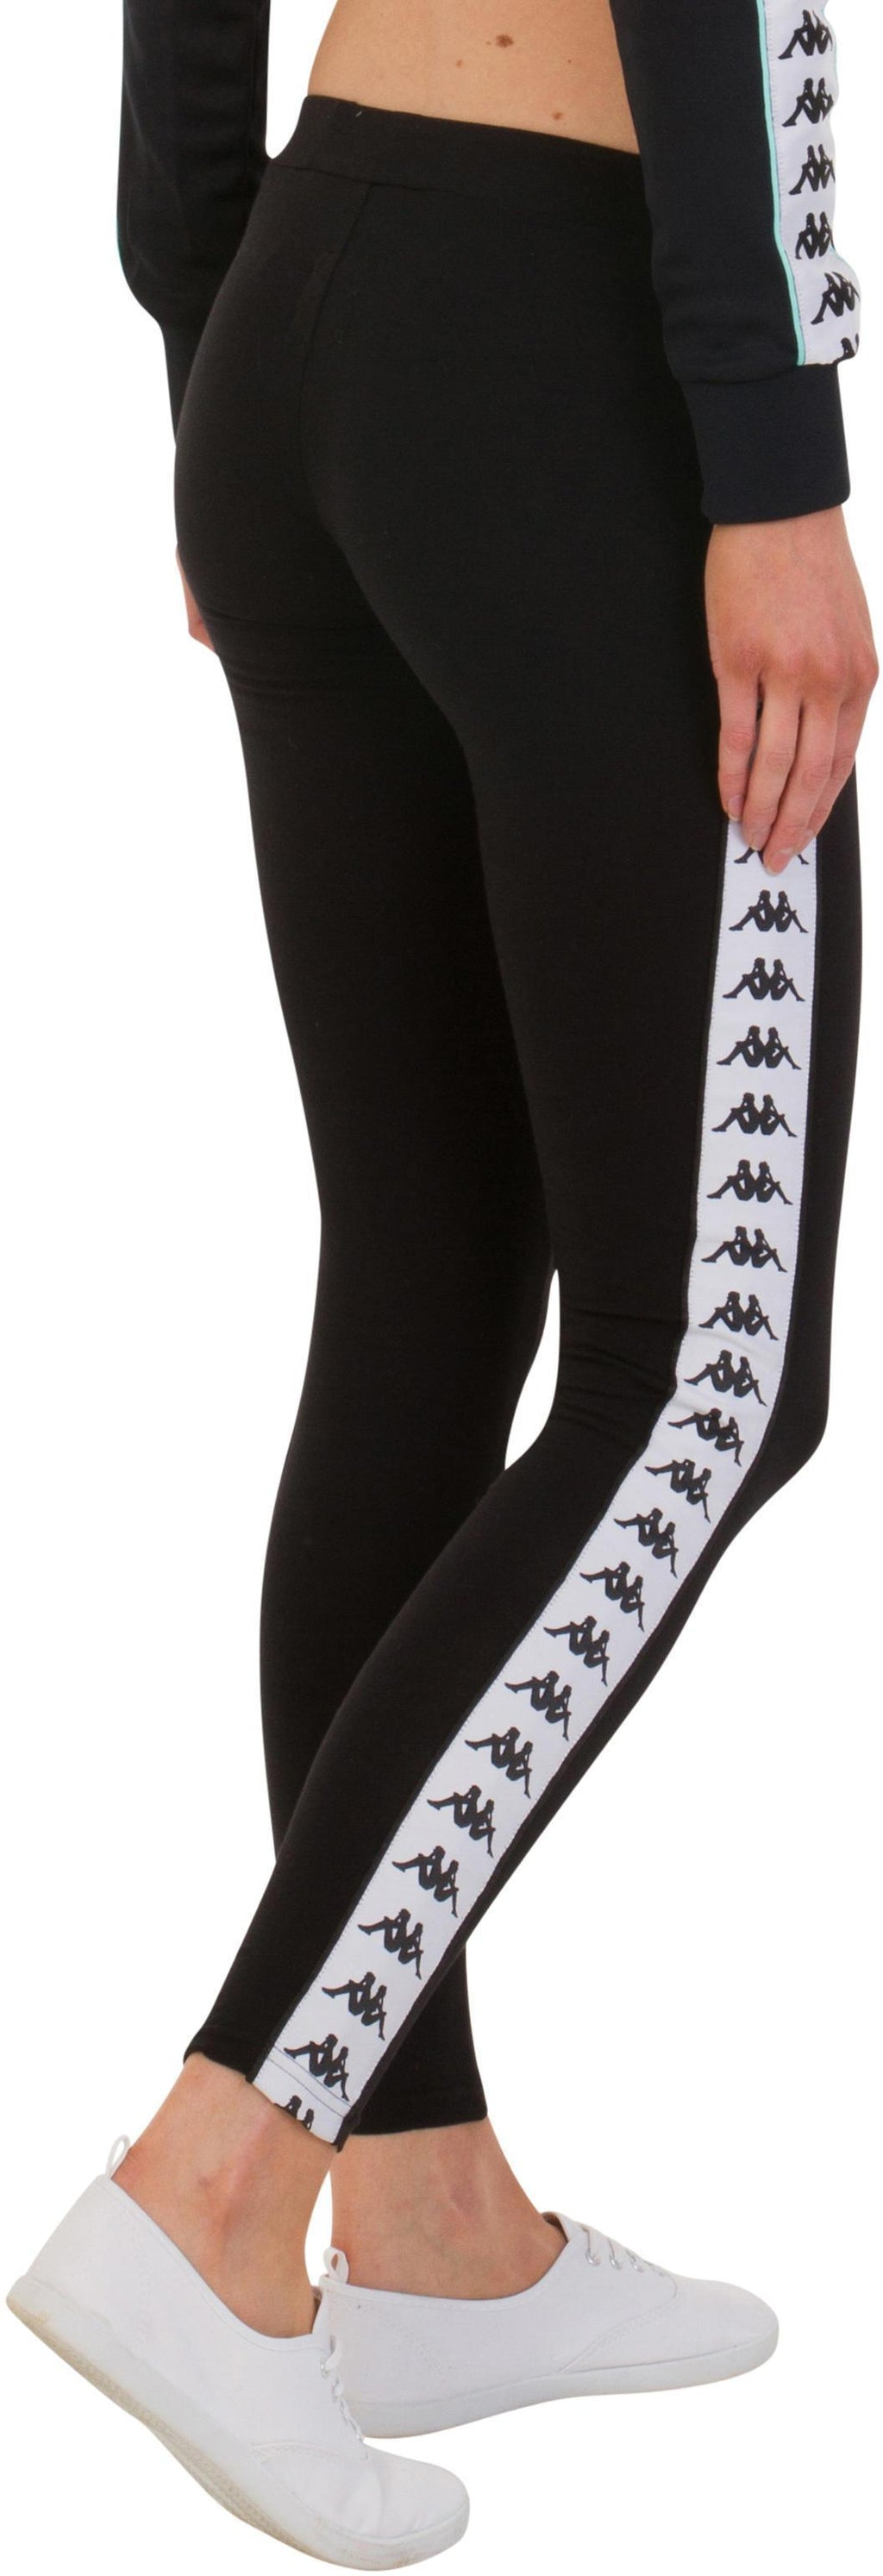 Kappa Anen Leggings Black/White